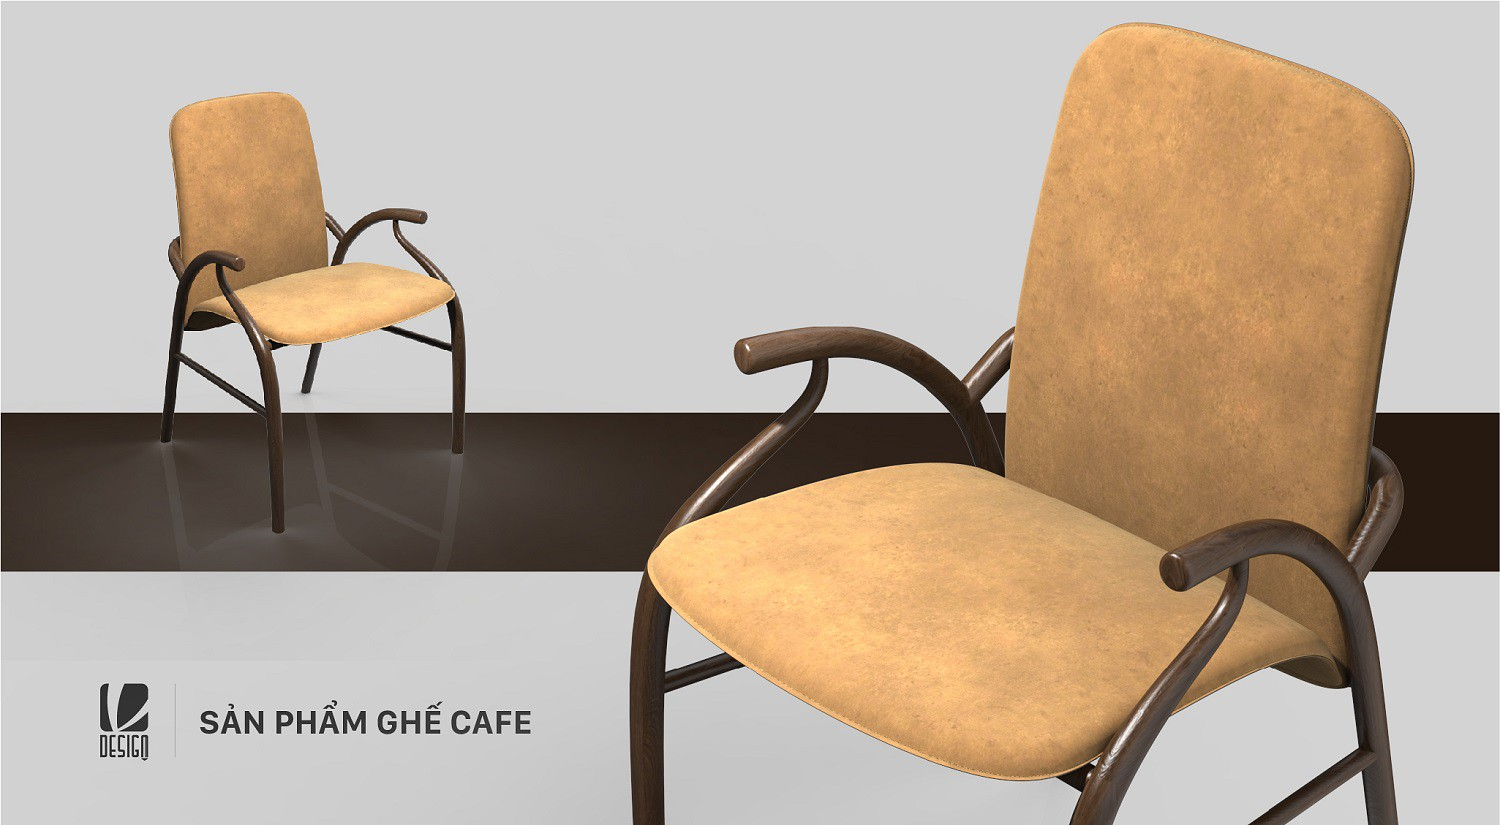 Cafe Chair design - Vdesign R&D